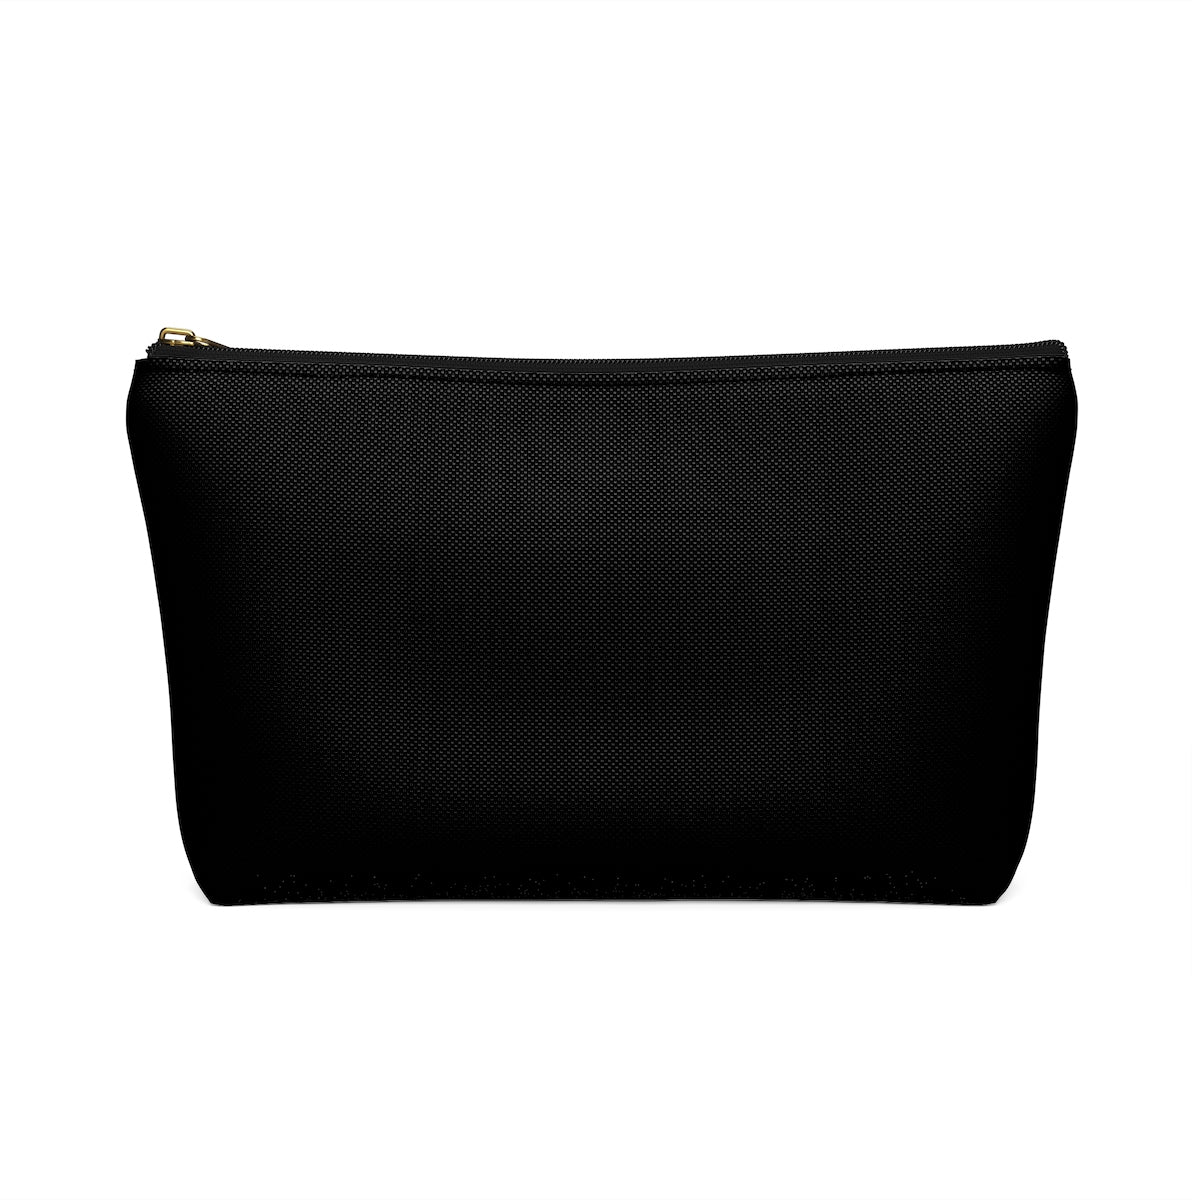 Grover Accessory Bag: Black